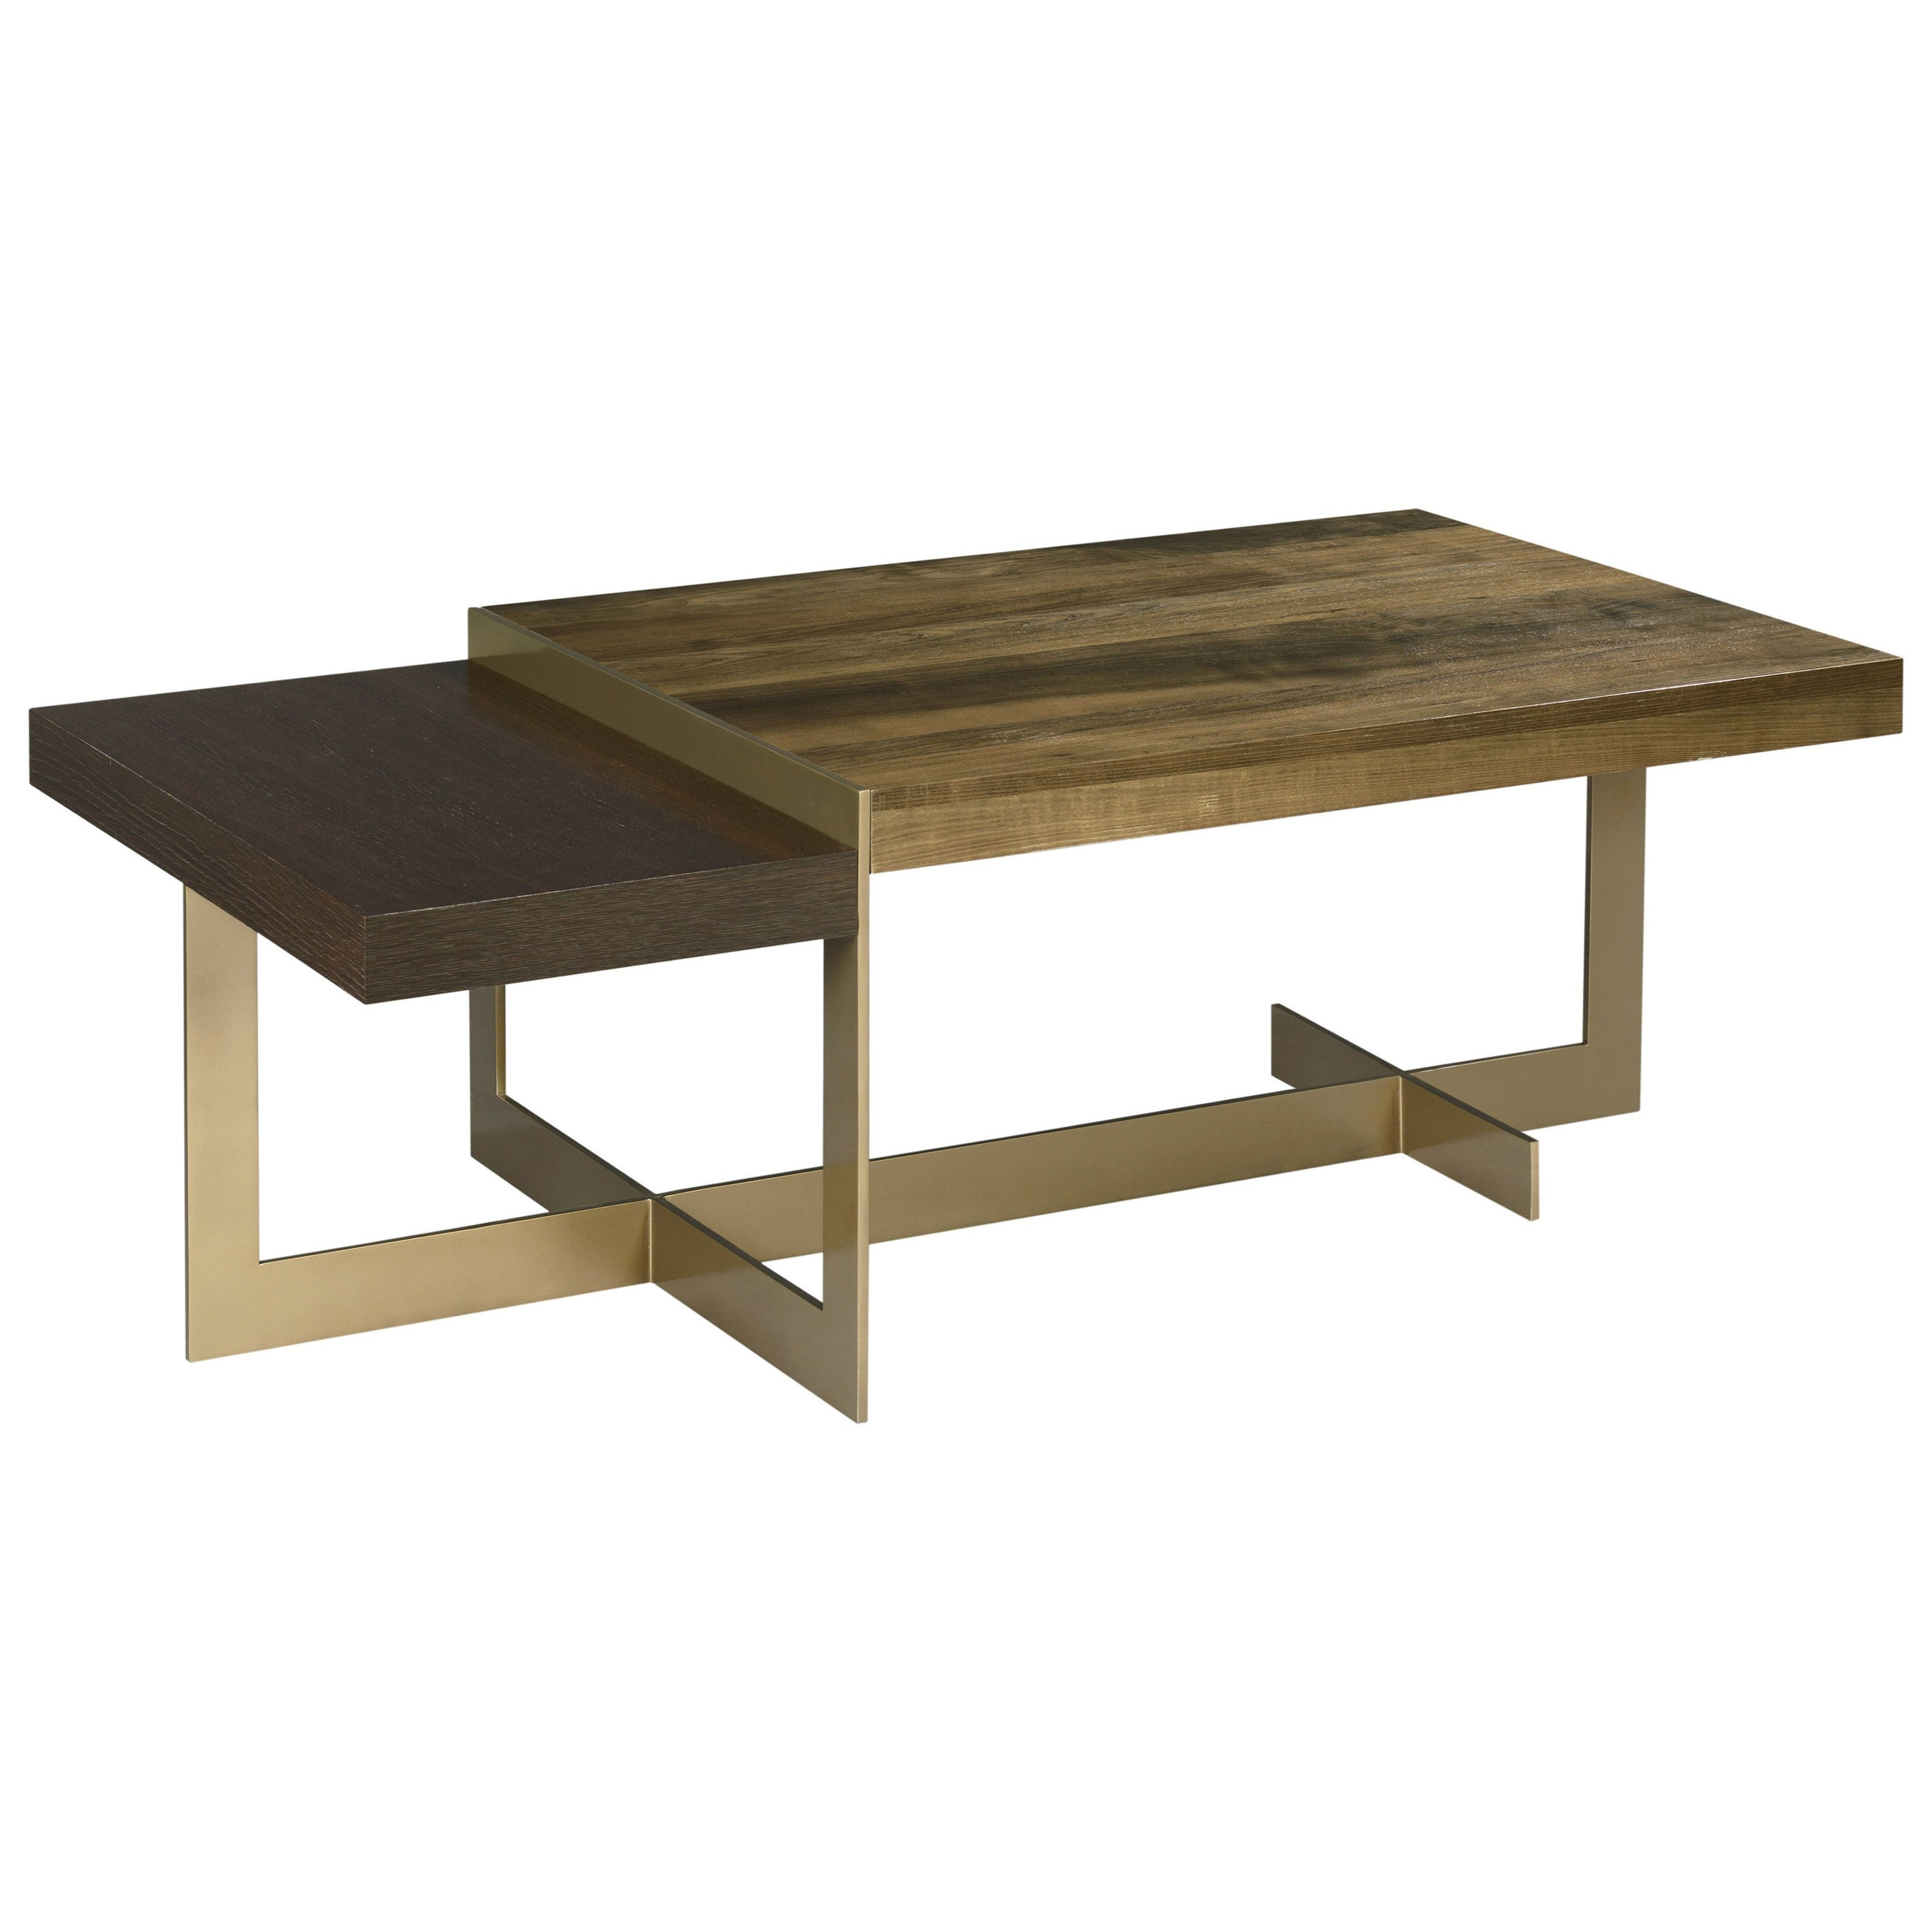 Ad Modern Organics Ogden Rectangular Cocktail Table by Living Trends at Sprintz Furniture